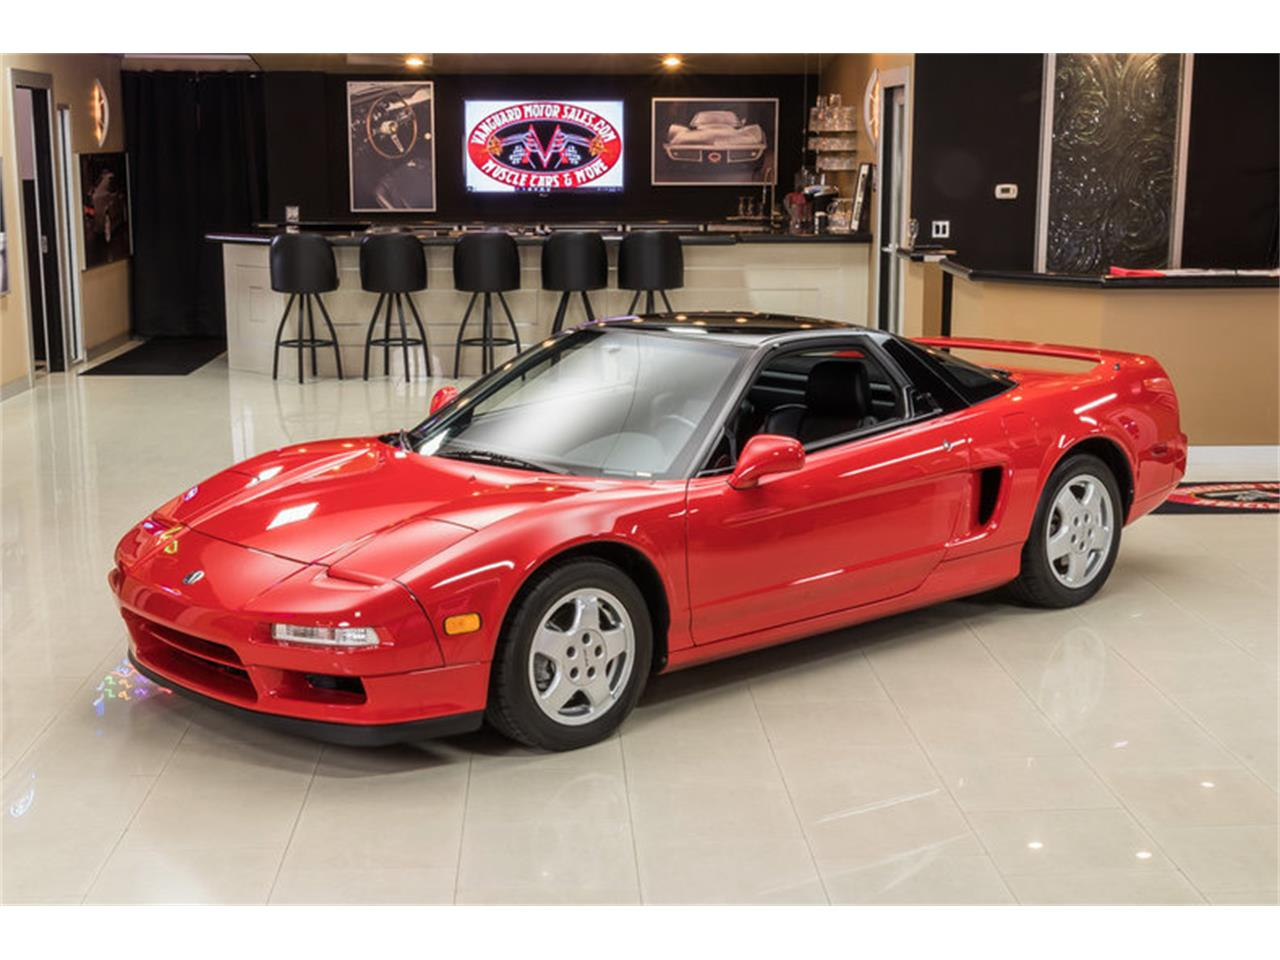 Large Picture of 1992 Acura NSX located in Plymouth Michigan - $69,900.00 Offered by Vanguard Motor Sales - MZ8C